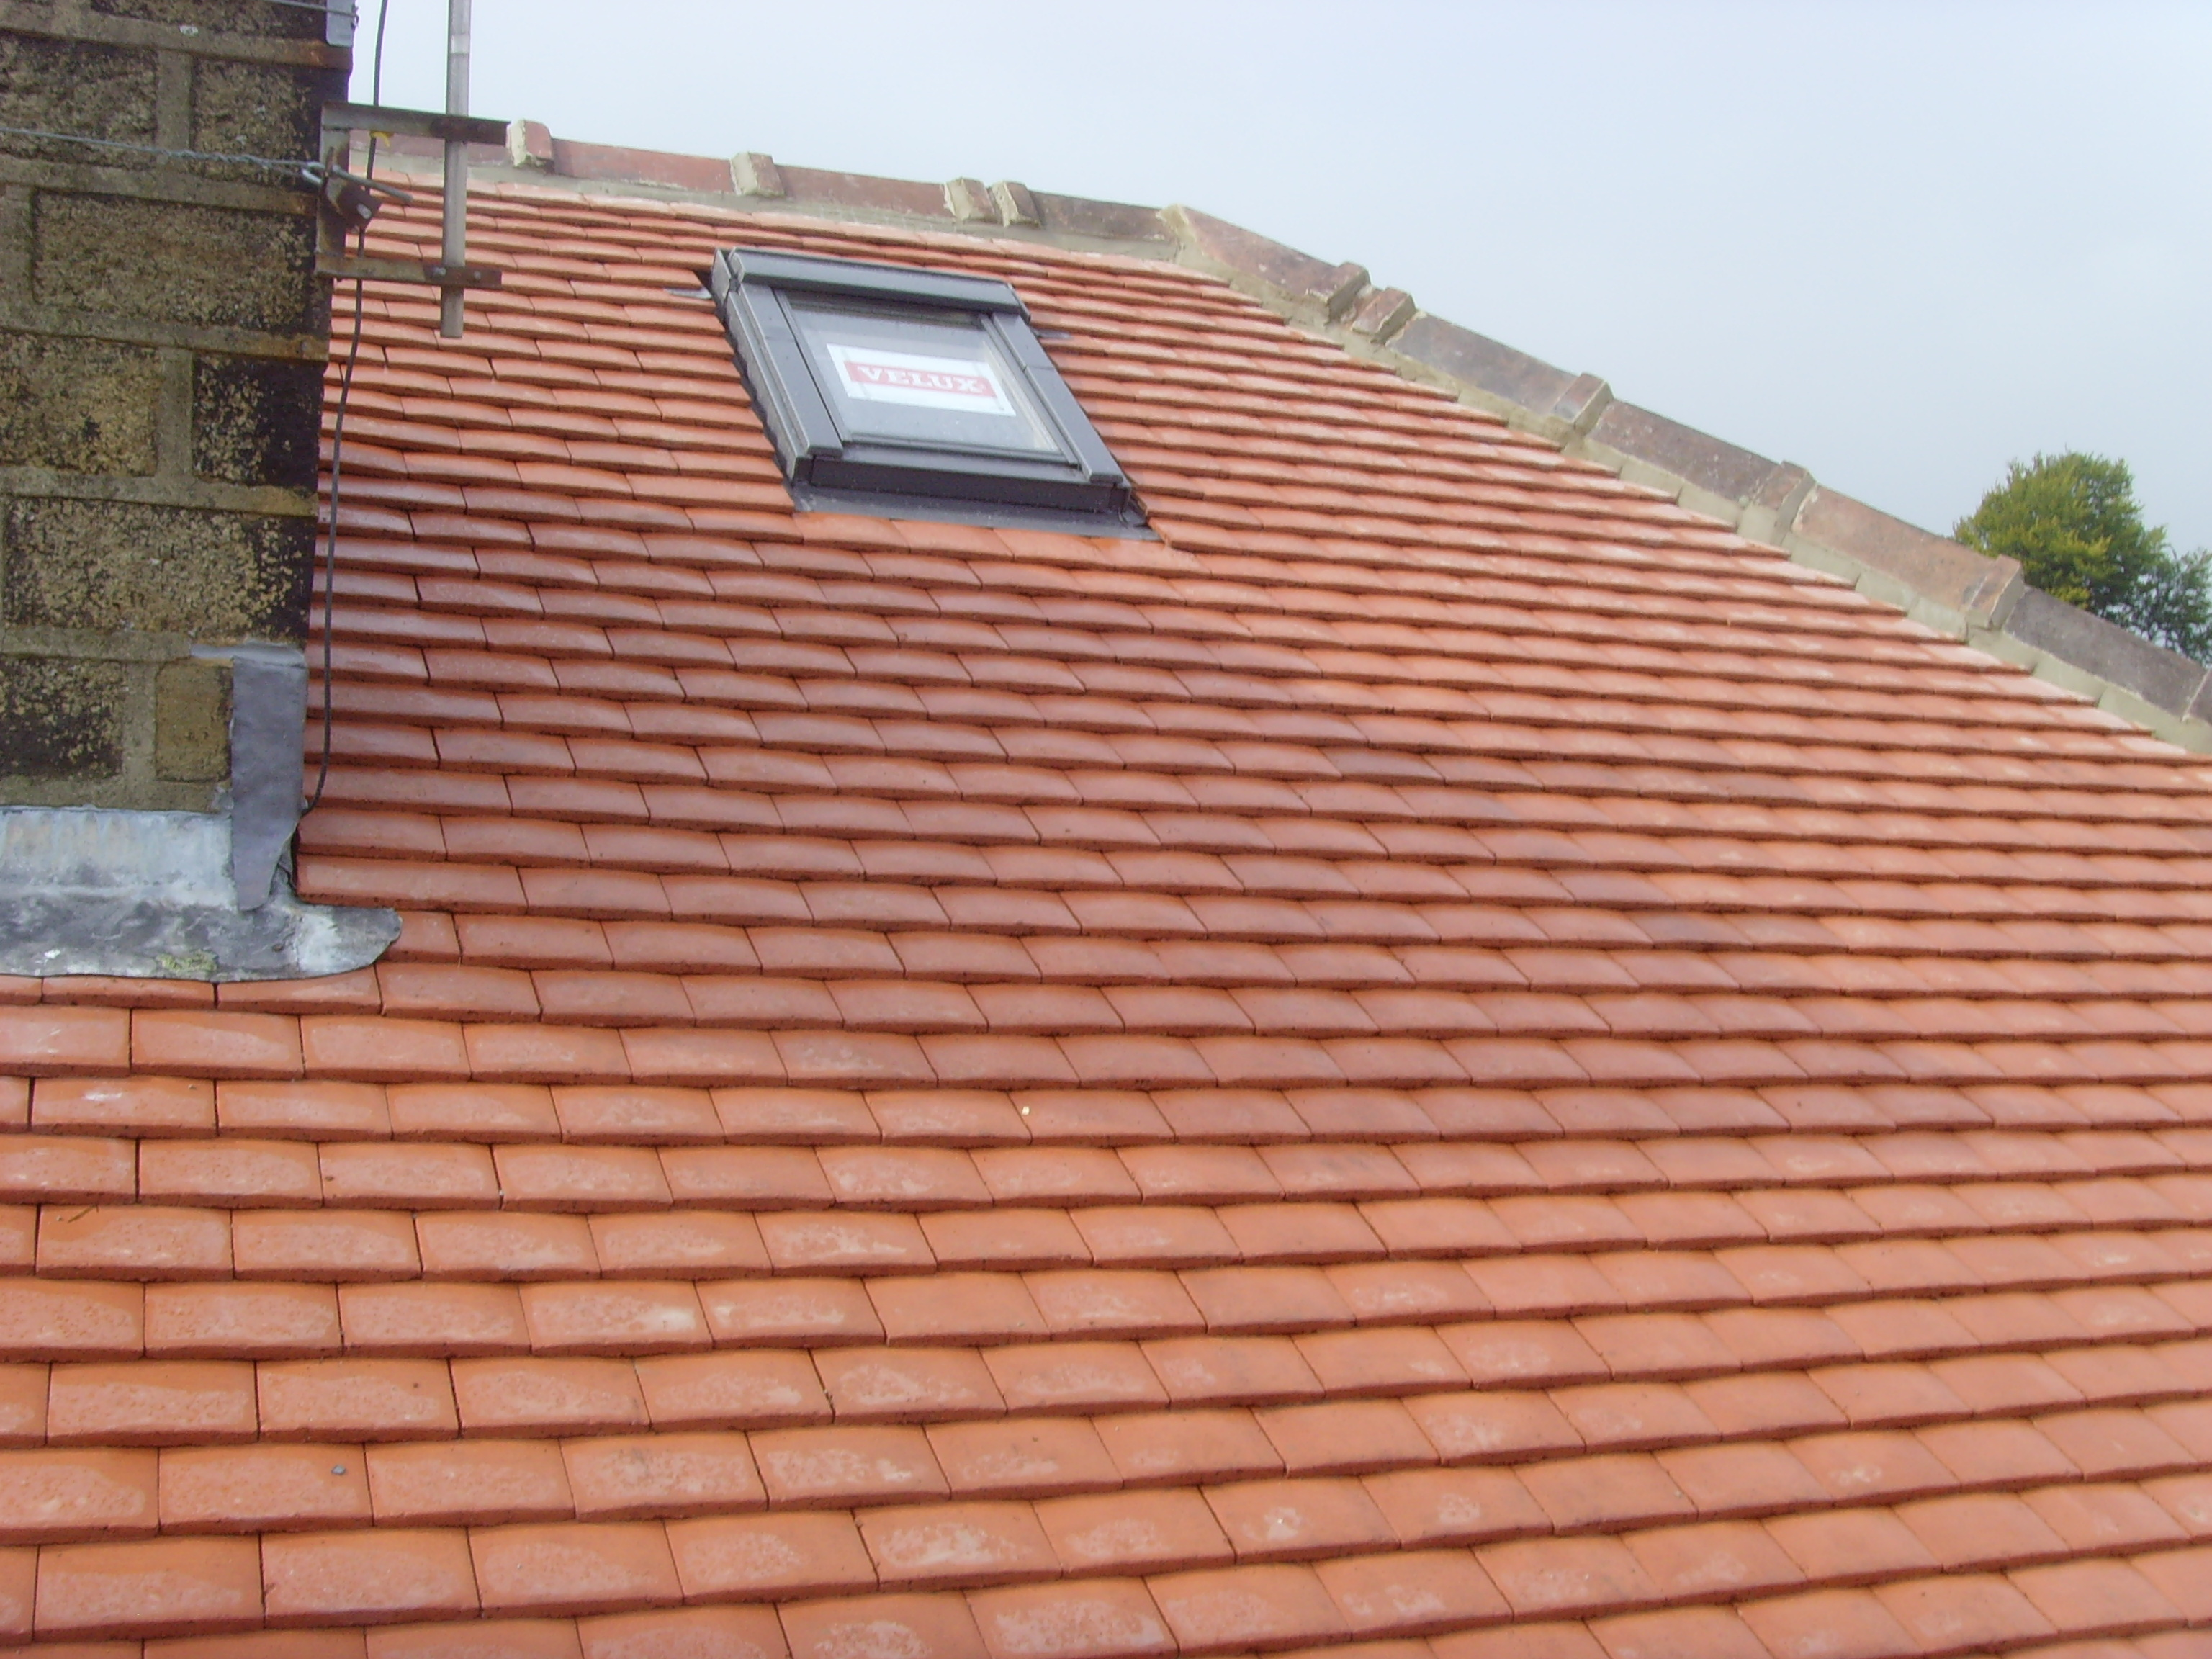 Tiled Roof Uisng Rosemary Clay Tiles Alpine Roofing